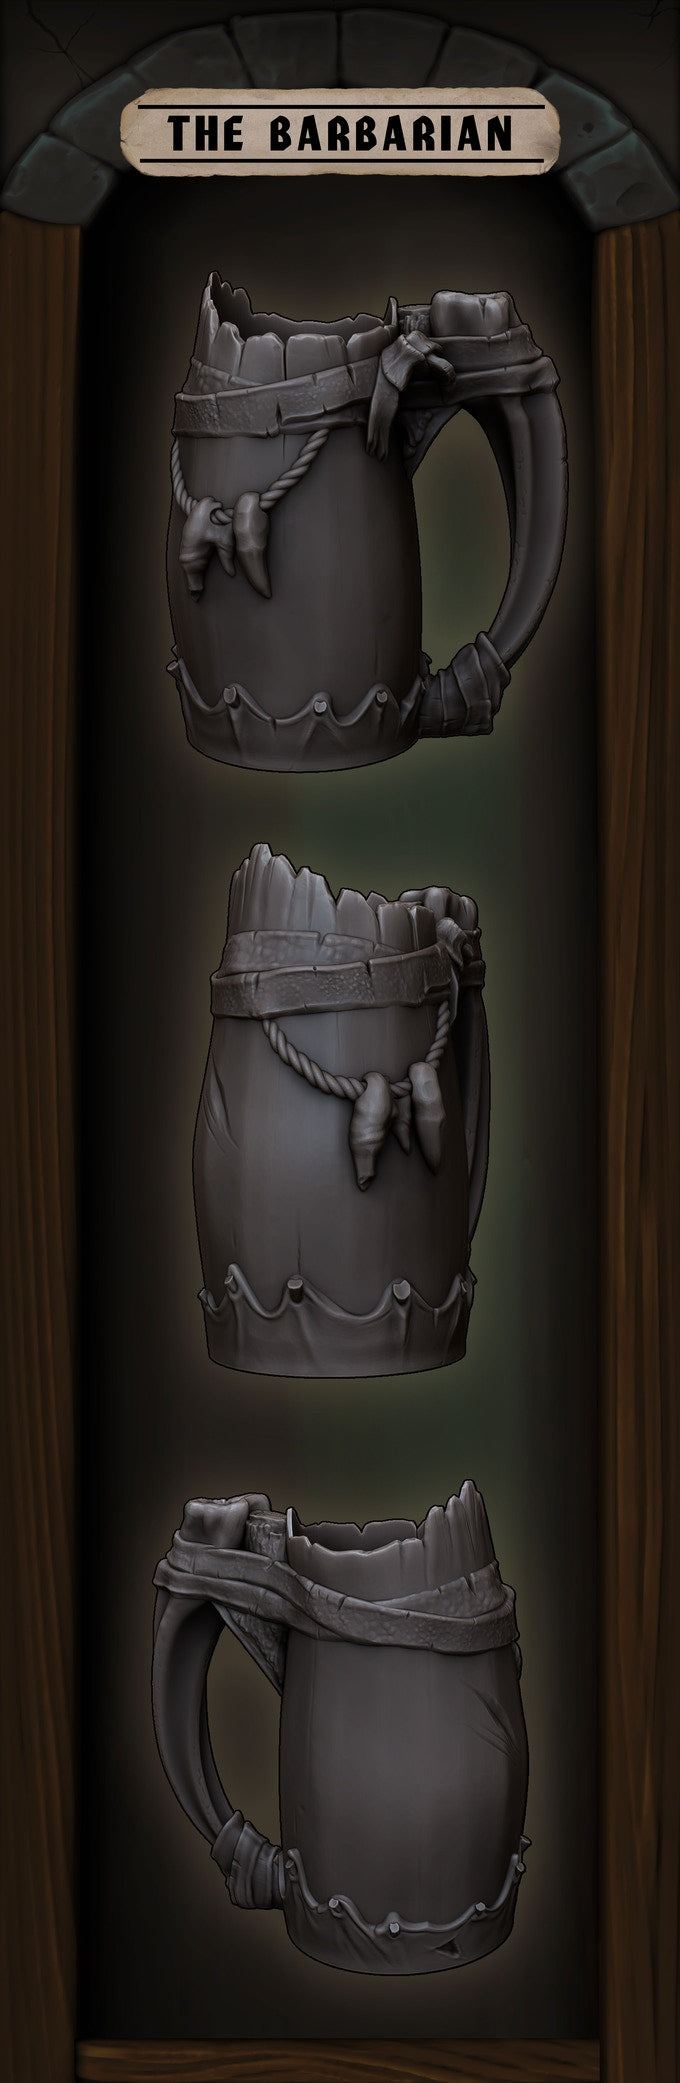 Mythic Mugs (15 Designs and more to come)